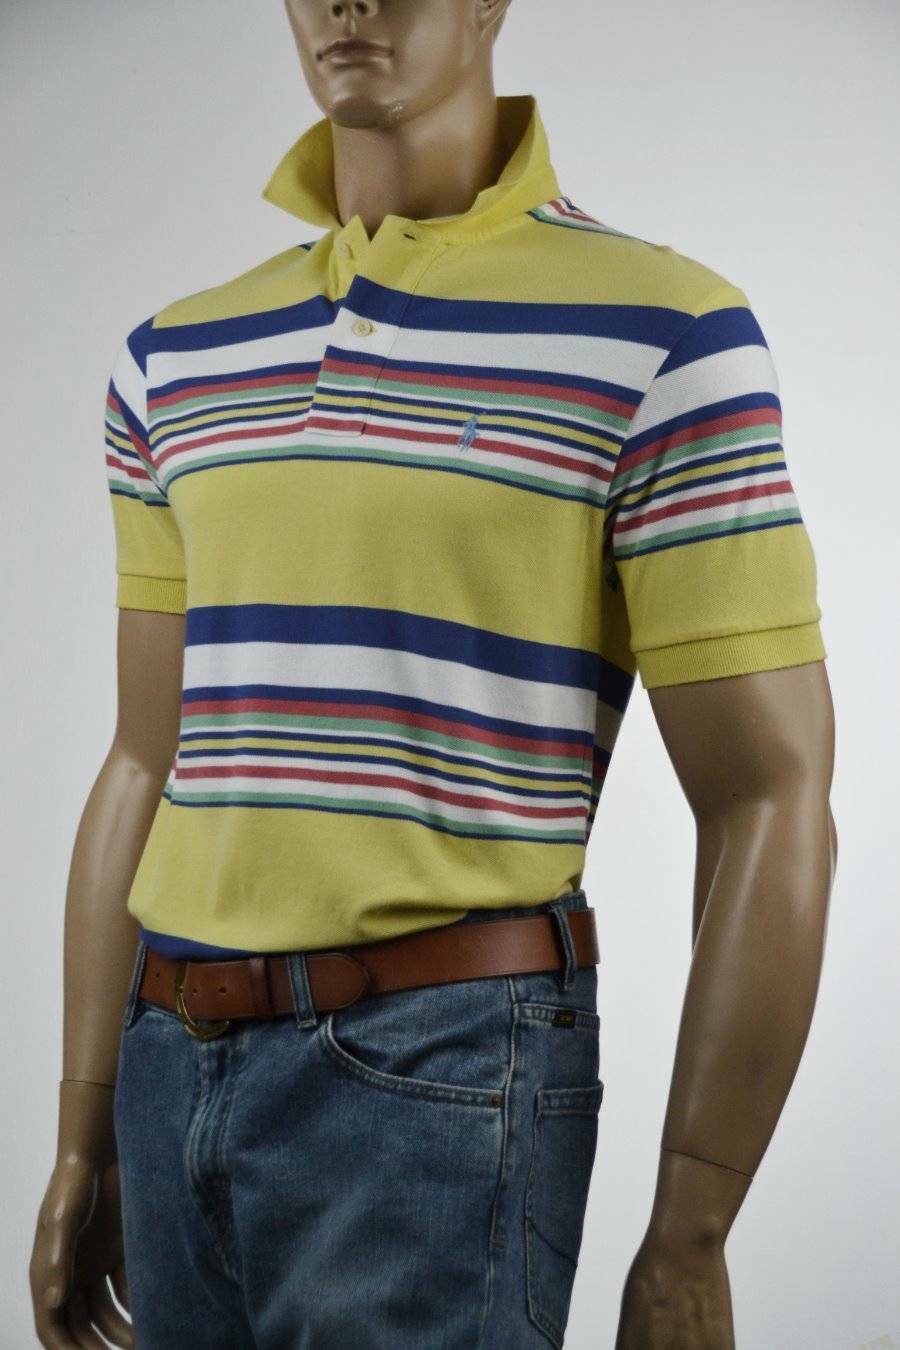 Ralph Lauren Classic Fit Yellow Multi-colord Stripe Mesh Polo Shirt Pony-NWT